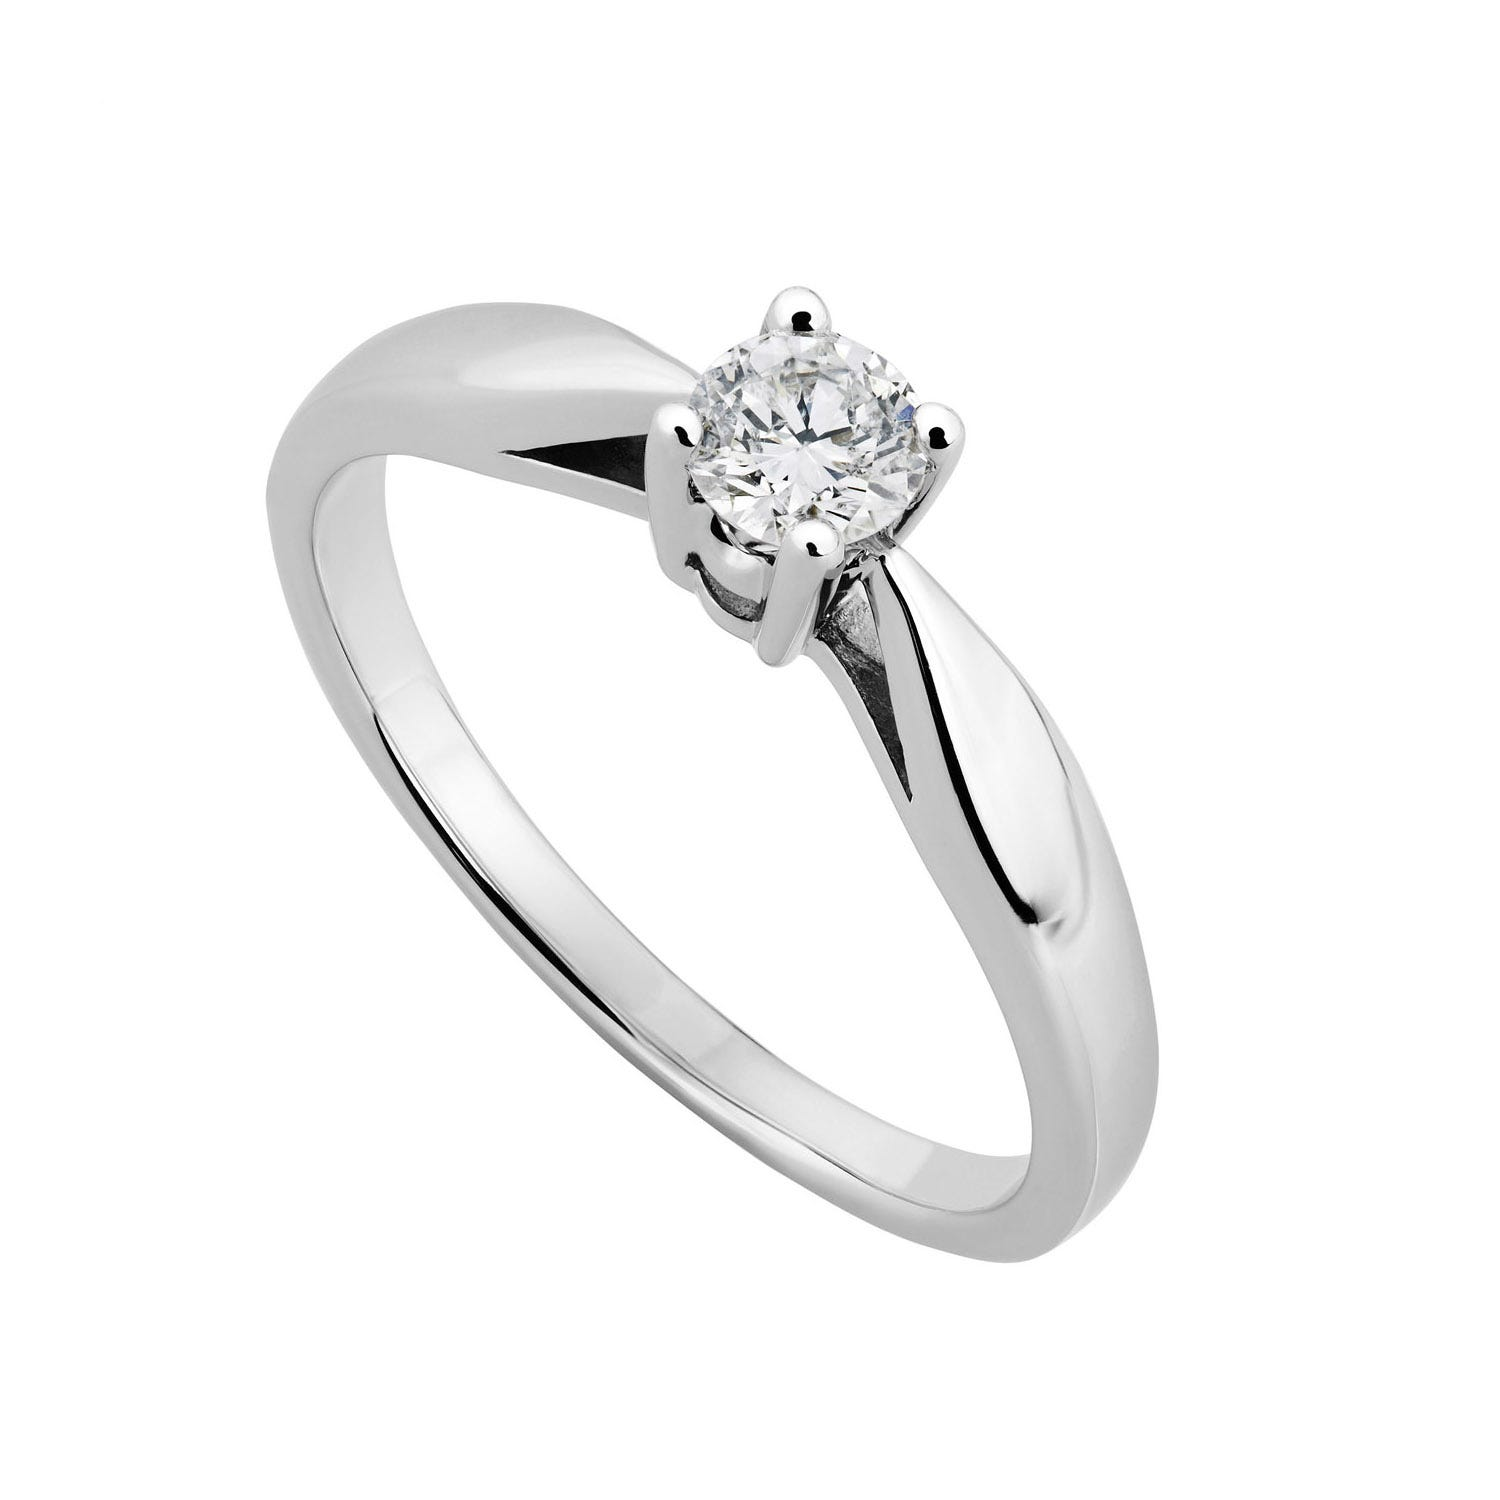 9ct white gold 0.25 carat diamond solitaire engagement ring